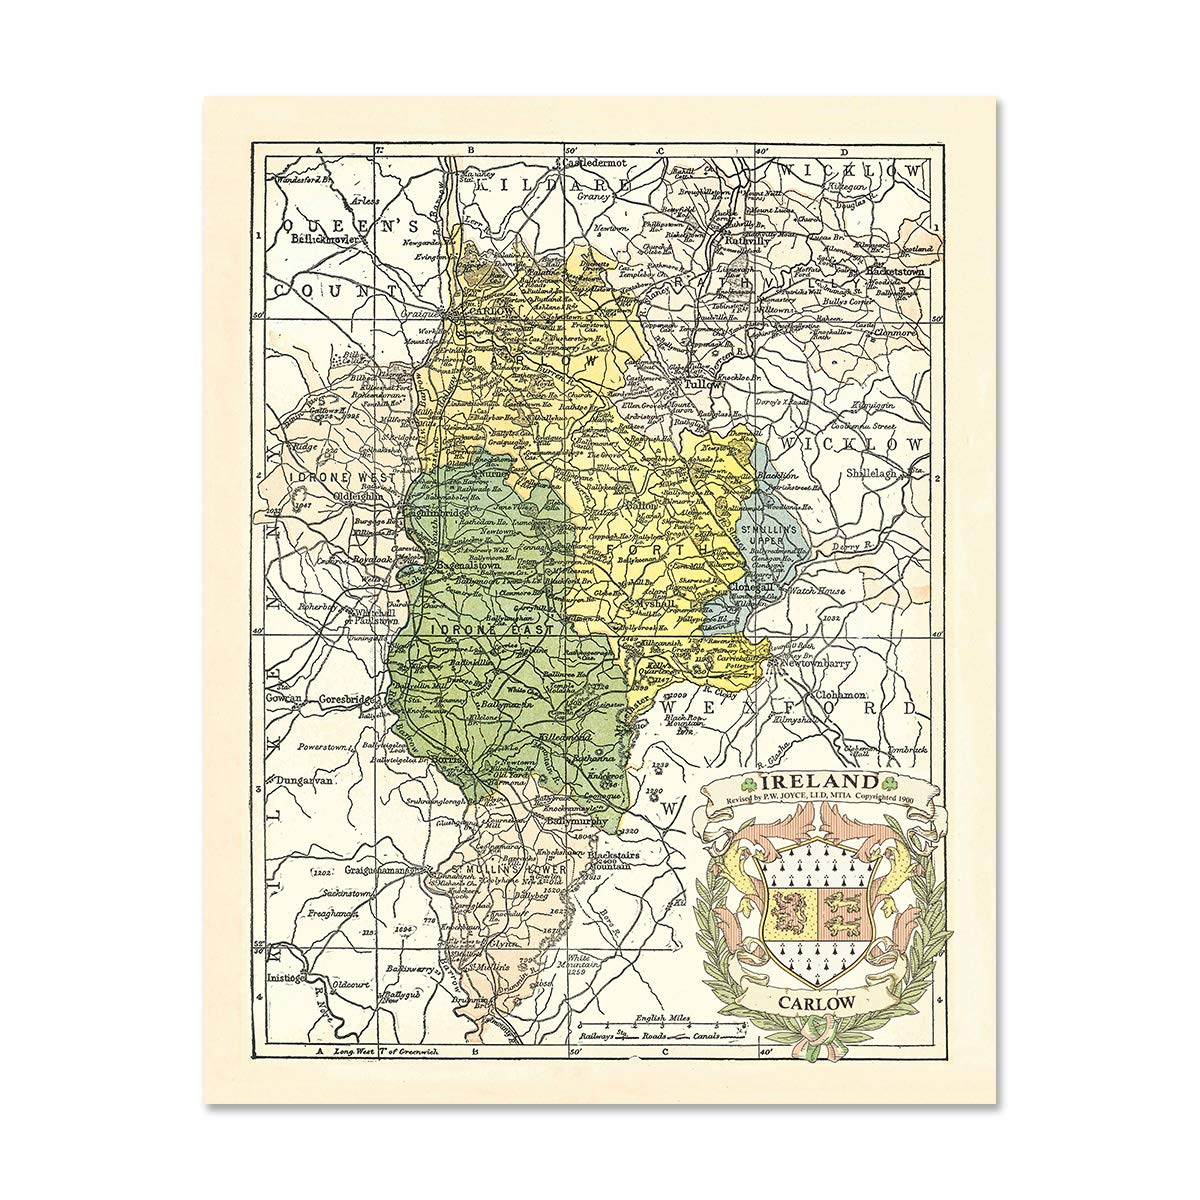 Carlow Map Of Ireland.Historic Families Carlow County Map Of Ireland Antique Reproduction Print